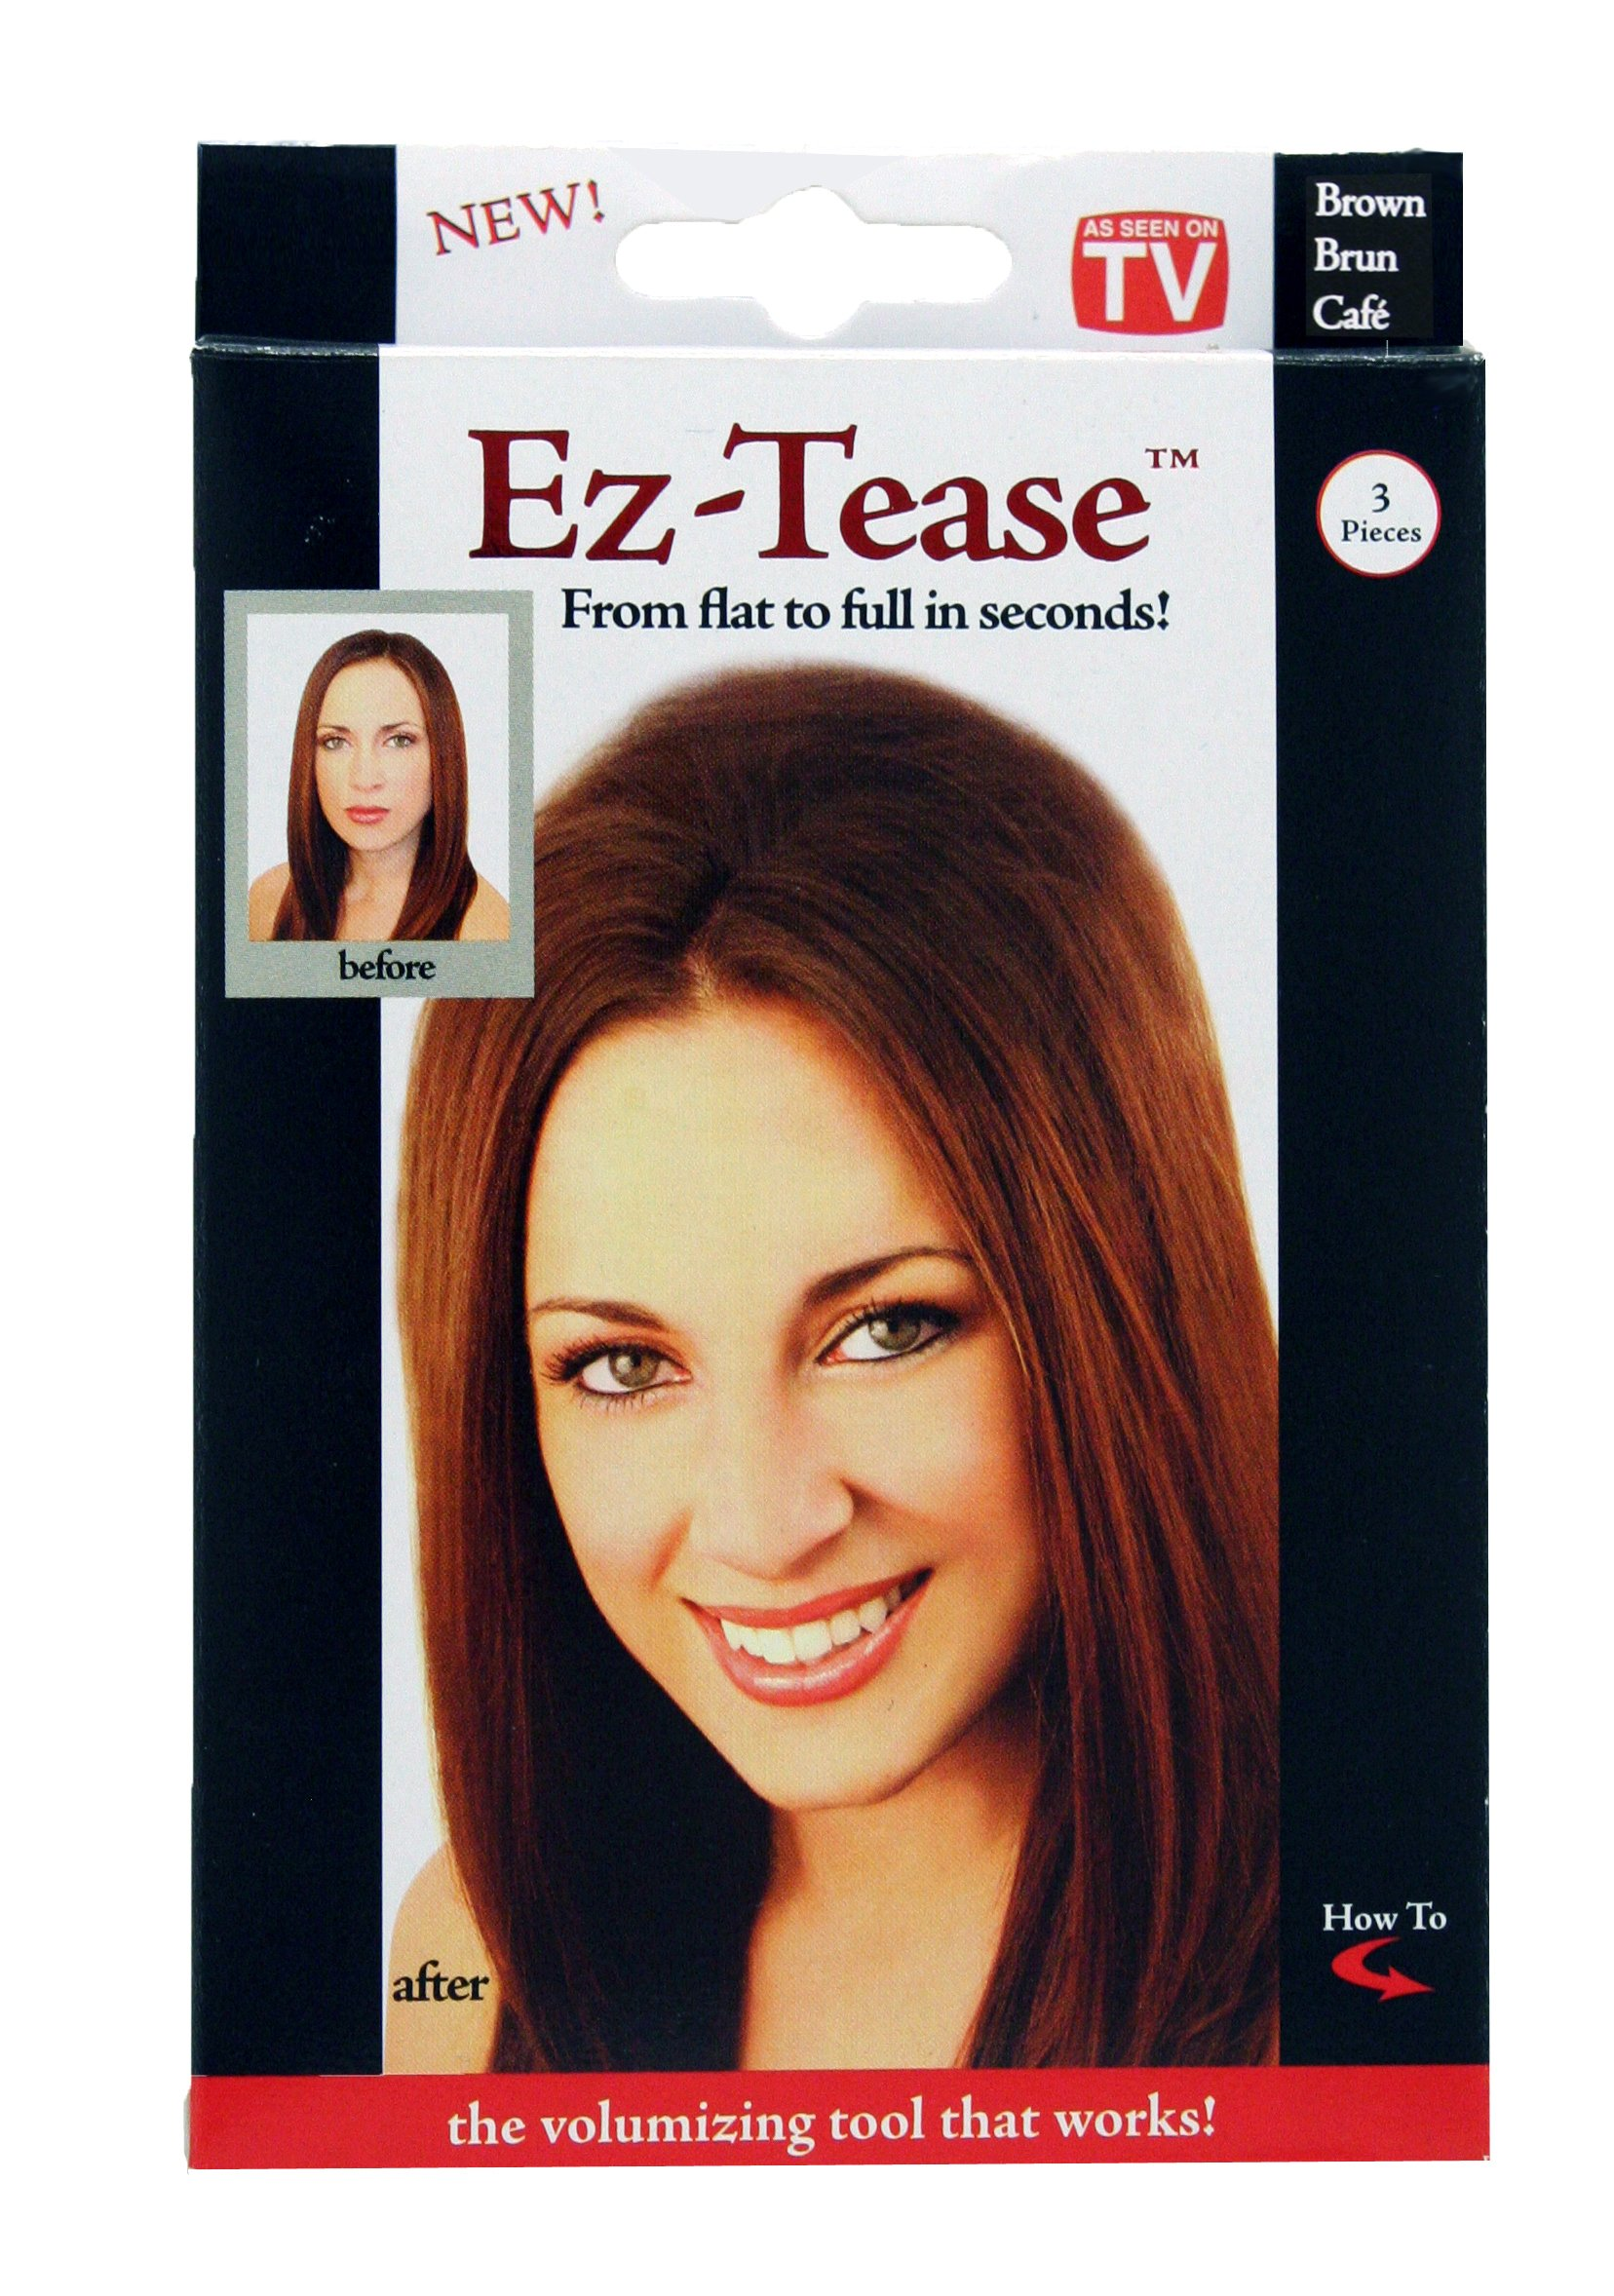 Mia Ez-Tease, Hair Volumizing Inserts, Grippit Material, Will Not Fall Out, Bump Up Your Hair, Blonde, for Women, Stylists, Teens, Girls 3 pcs by Mia Beauty (Image #2)